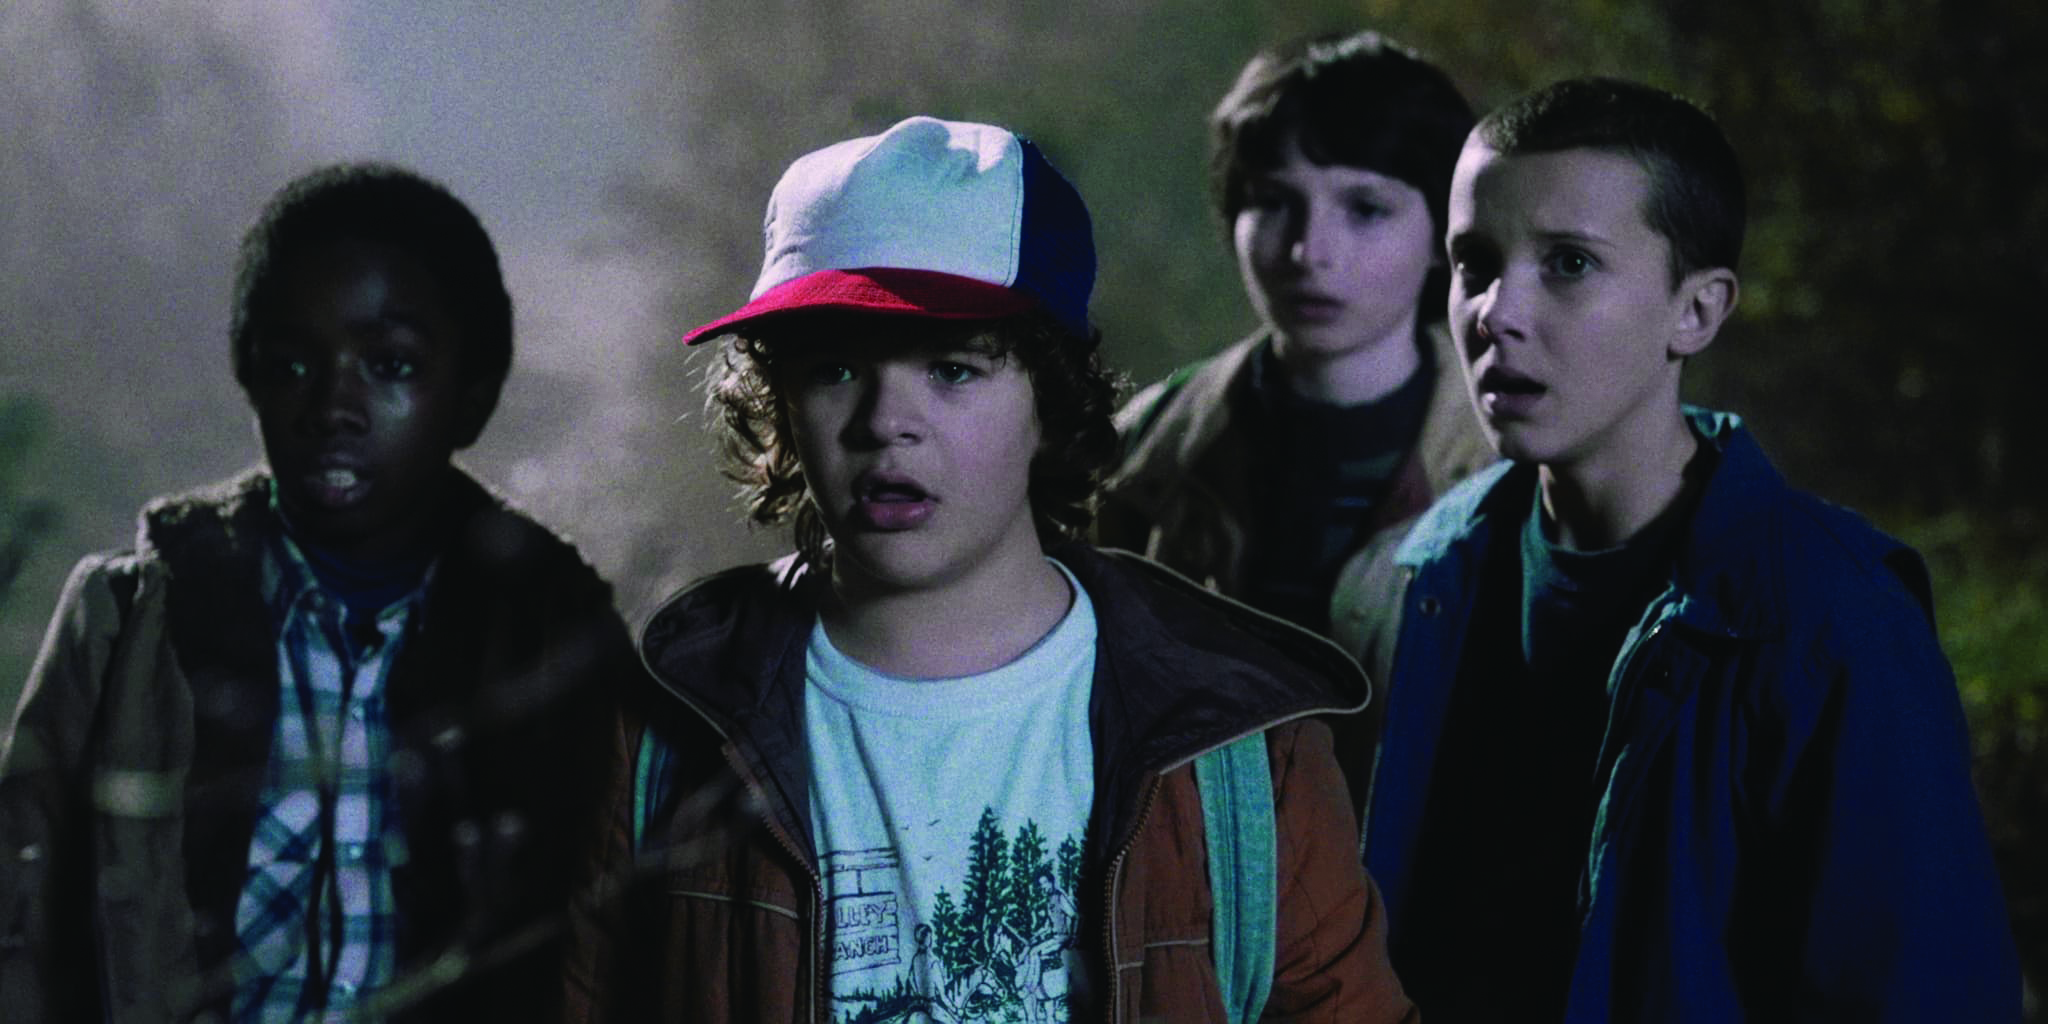 The 'Stranger Things 3' trailer is here, and it's revealed a new monster